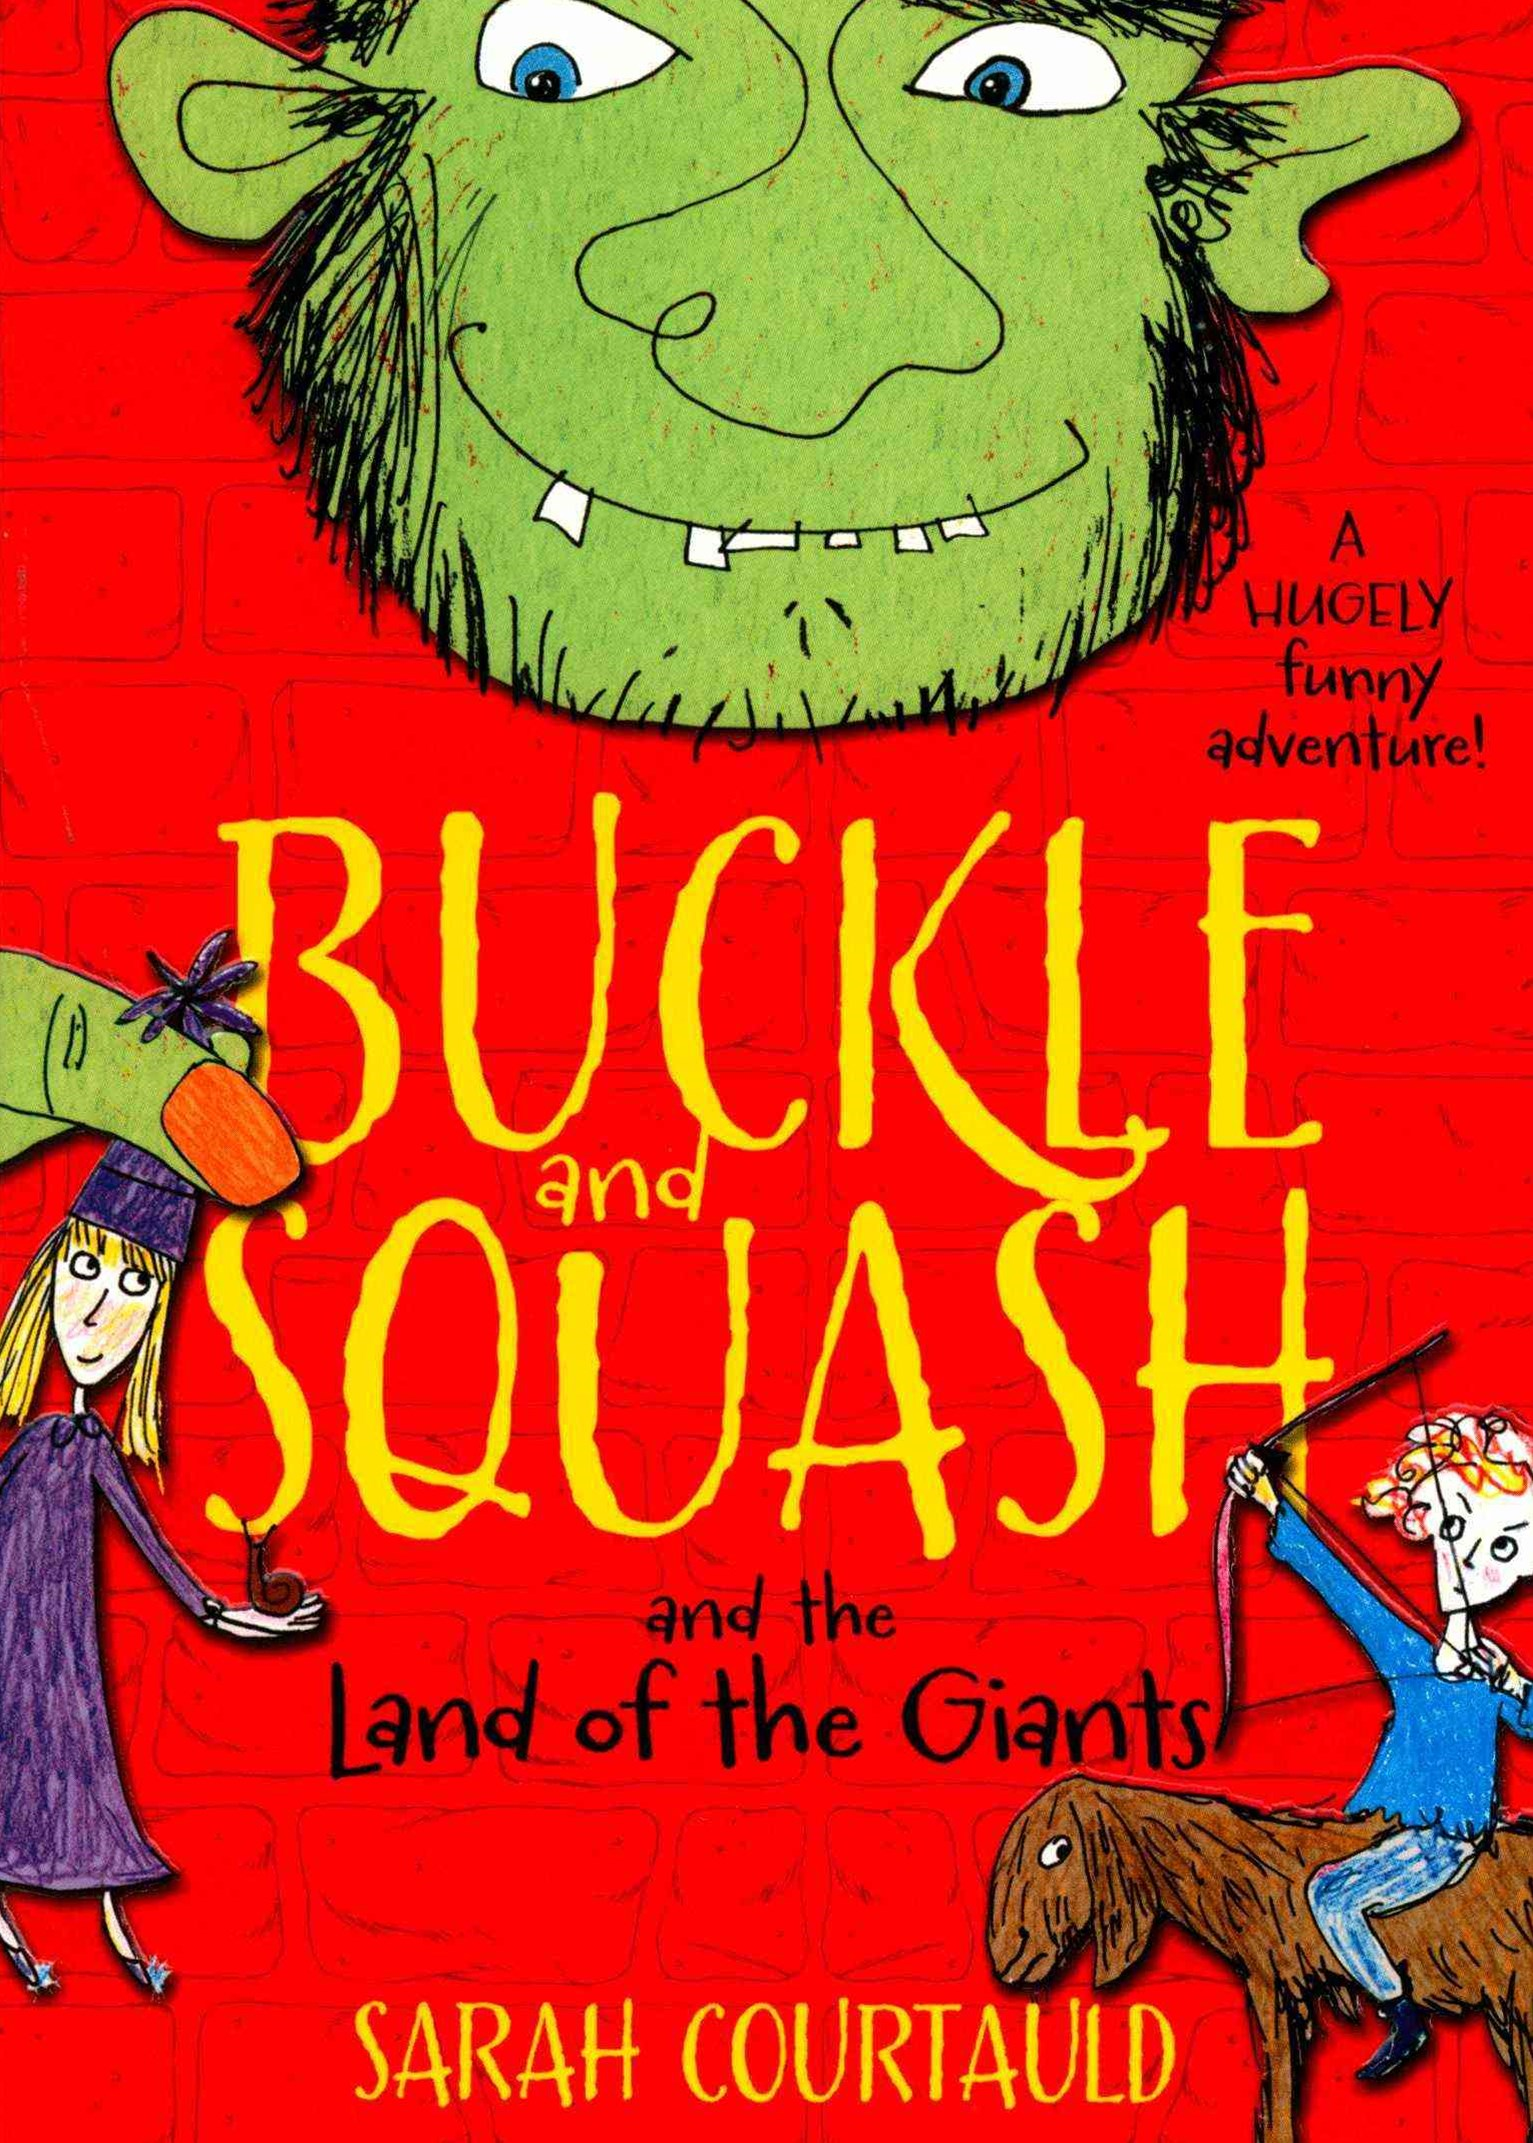 Buckle and Squash and the Land of the Giants: Book 2